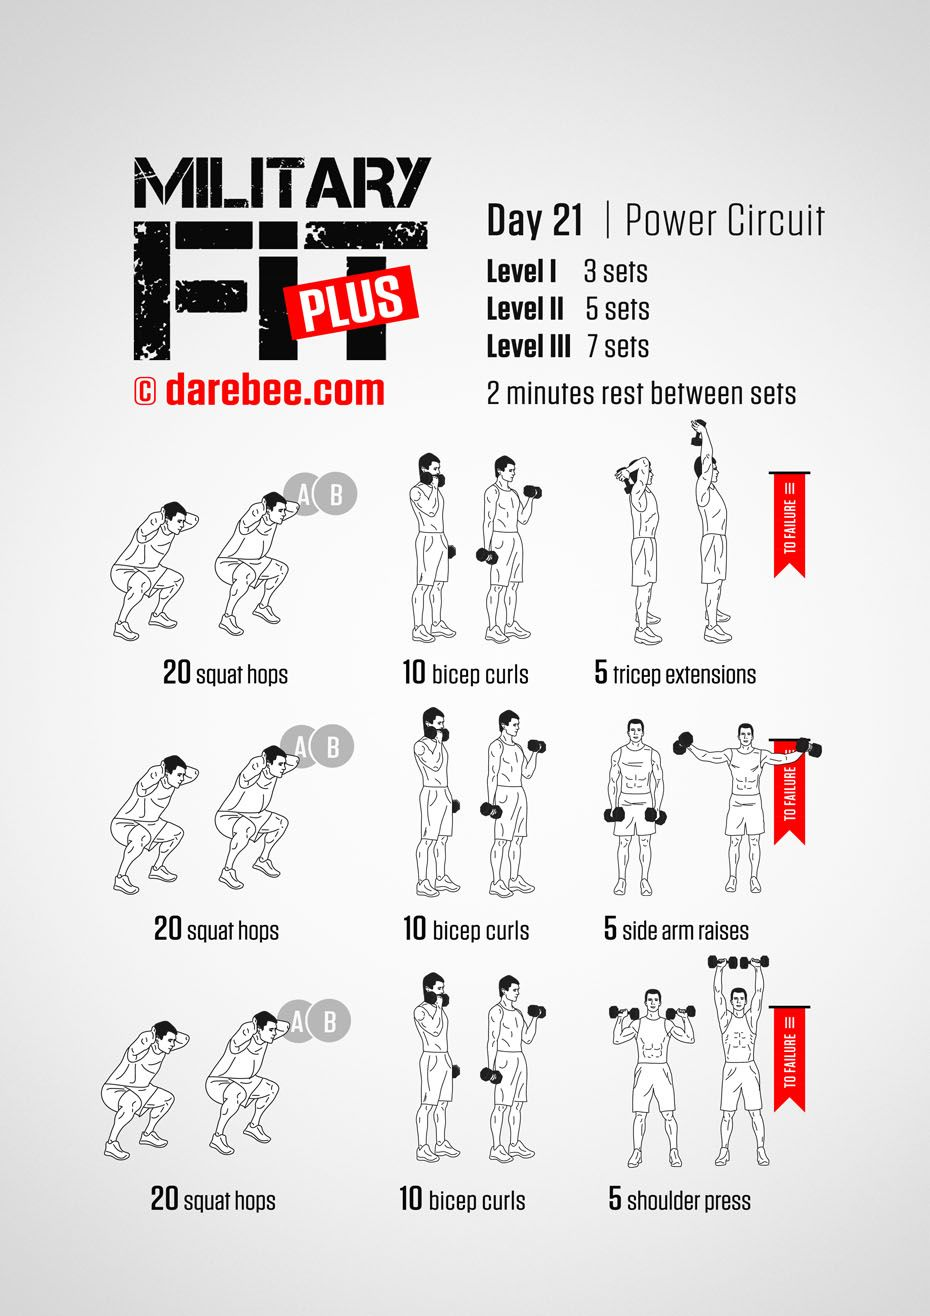 Military Fit Plus: 30-Day Fitness Program #dumbbellexercises